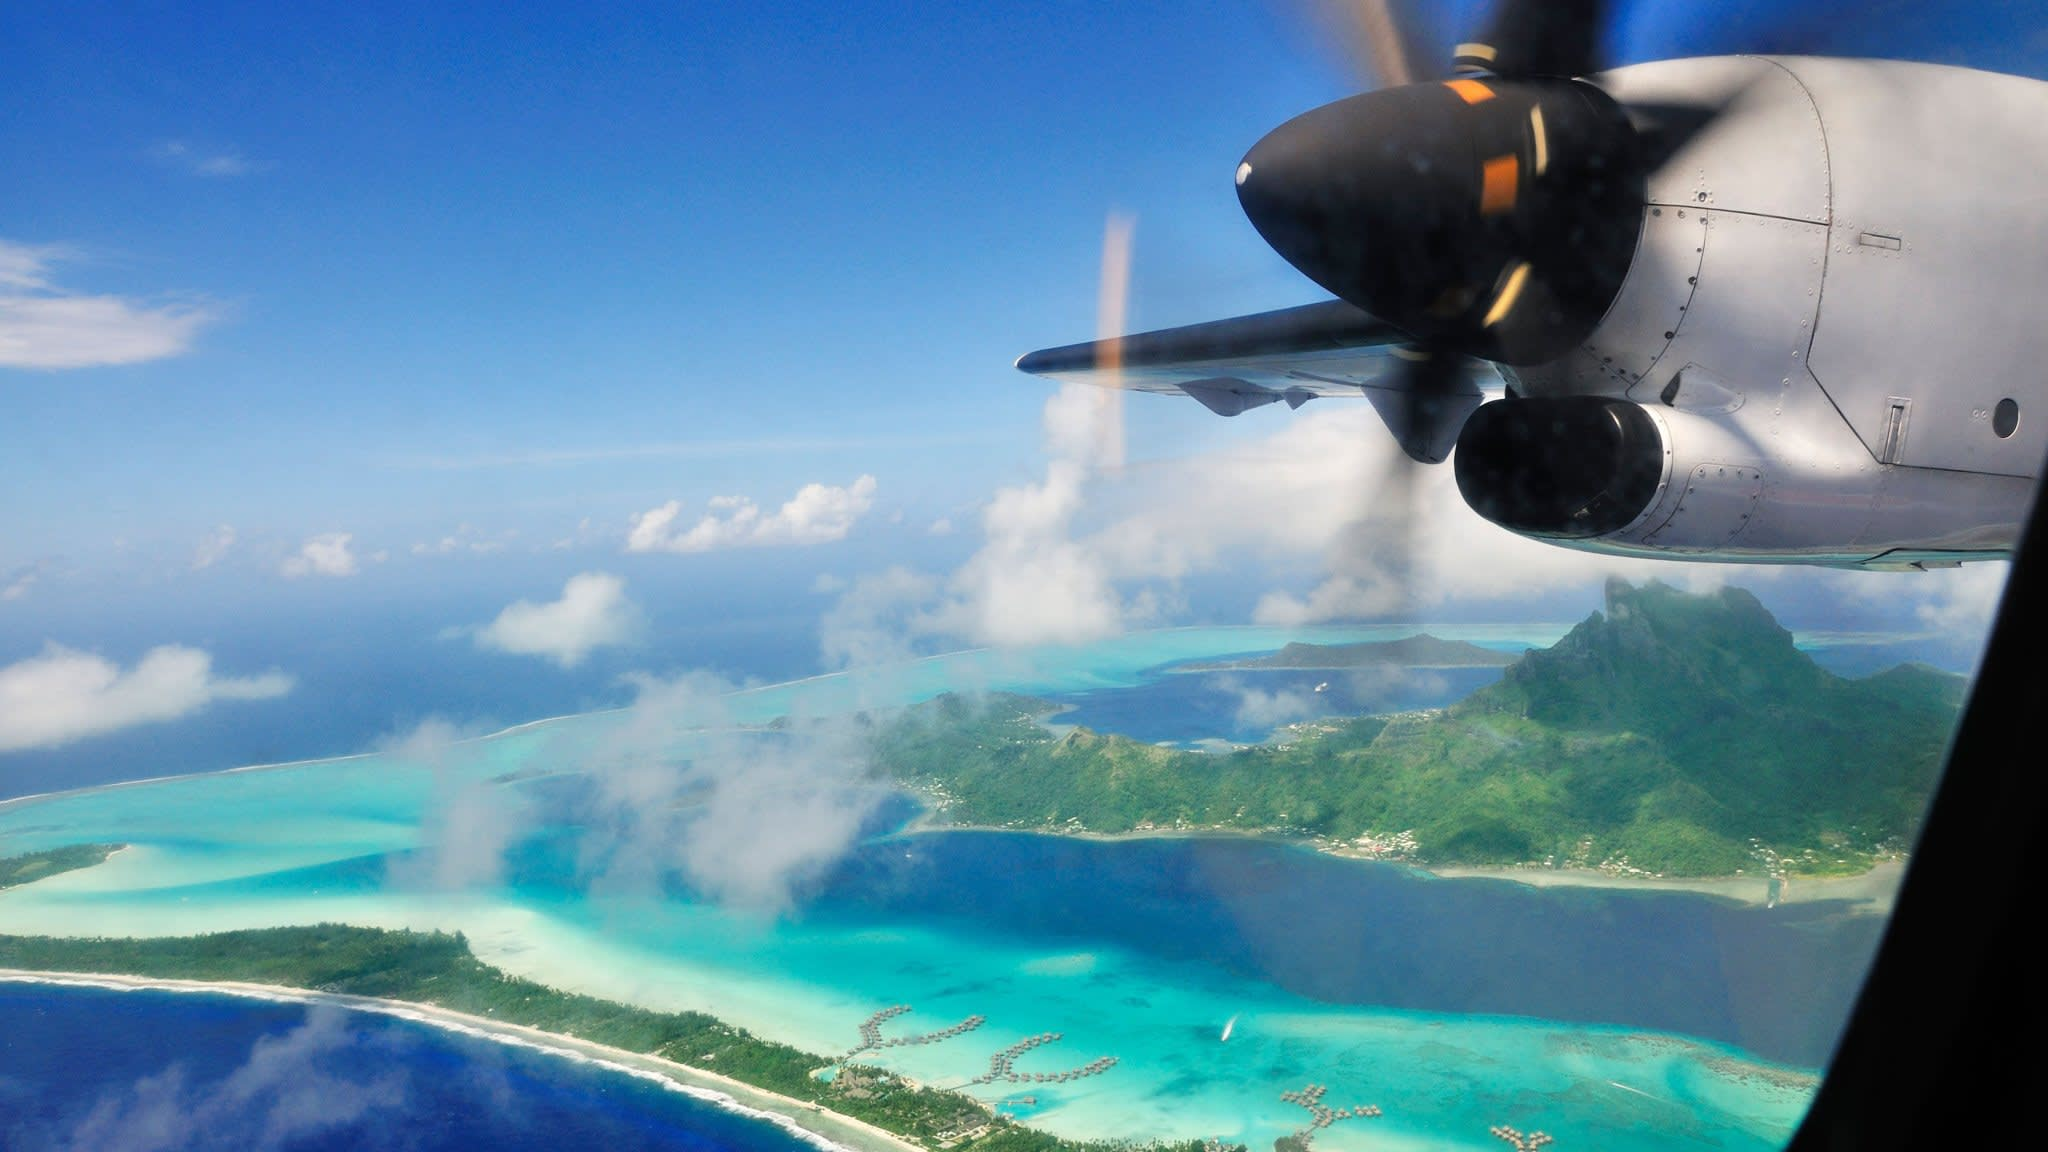 The perfect age to plan a round-the-world trip | Financial Times